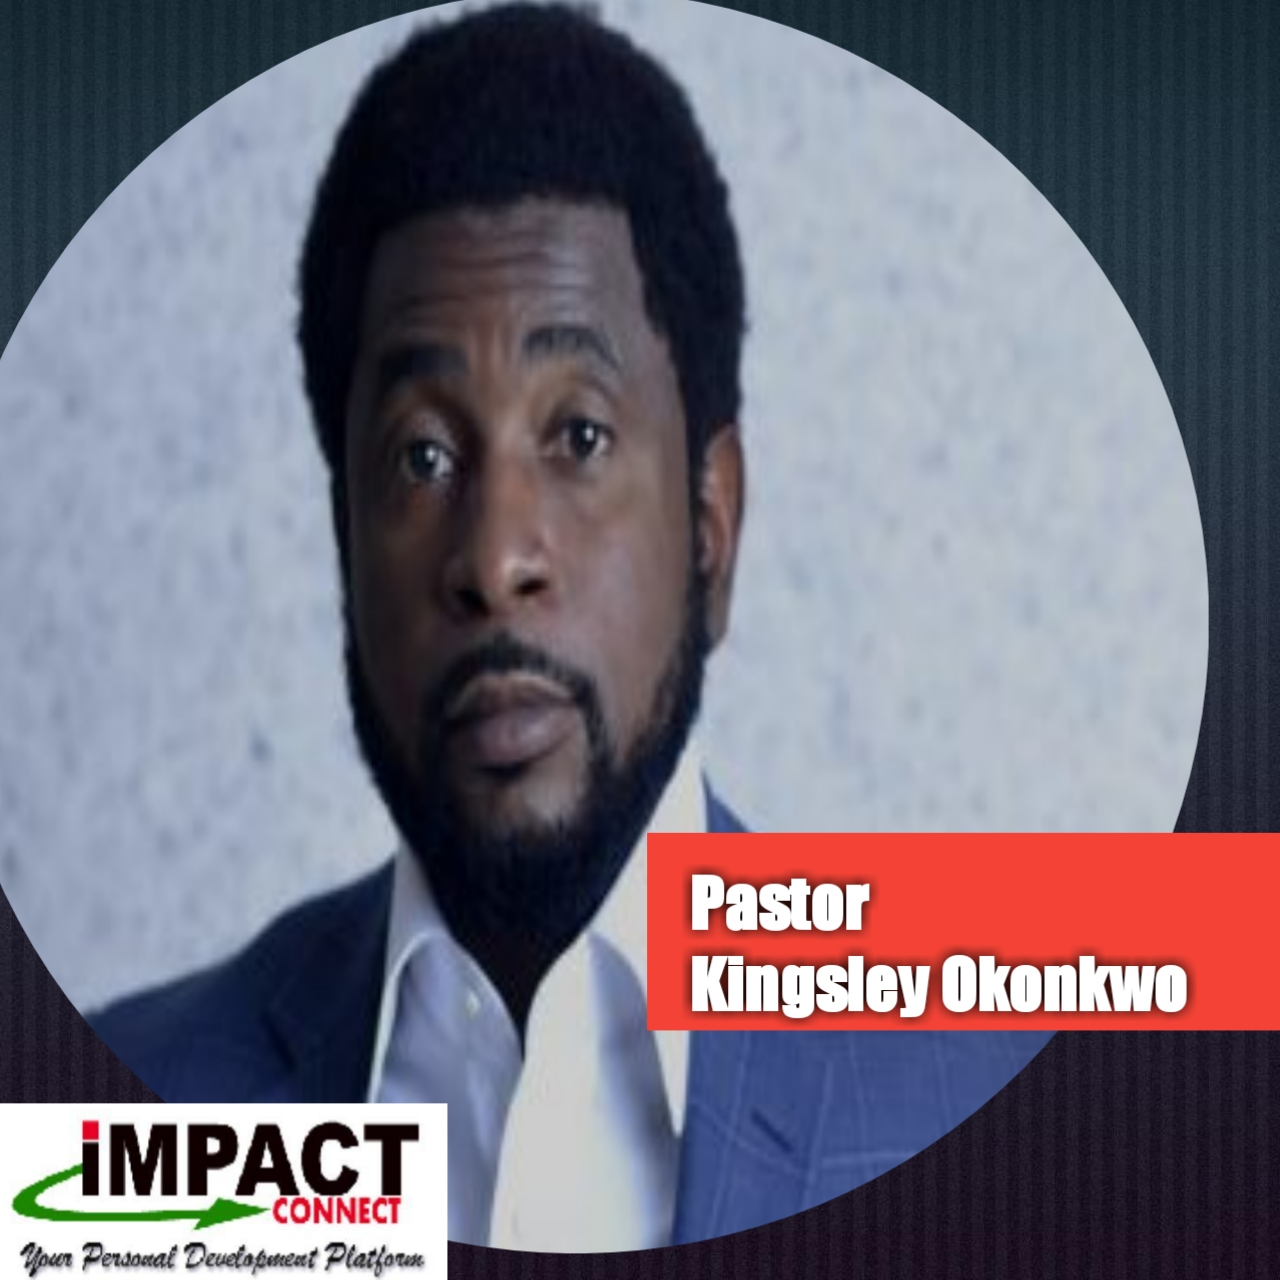 Download Sermon: Dealing with Depression | Kingsley Okonkwo